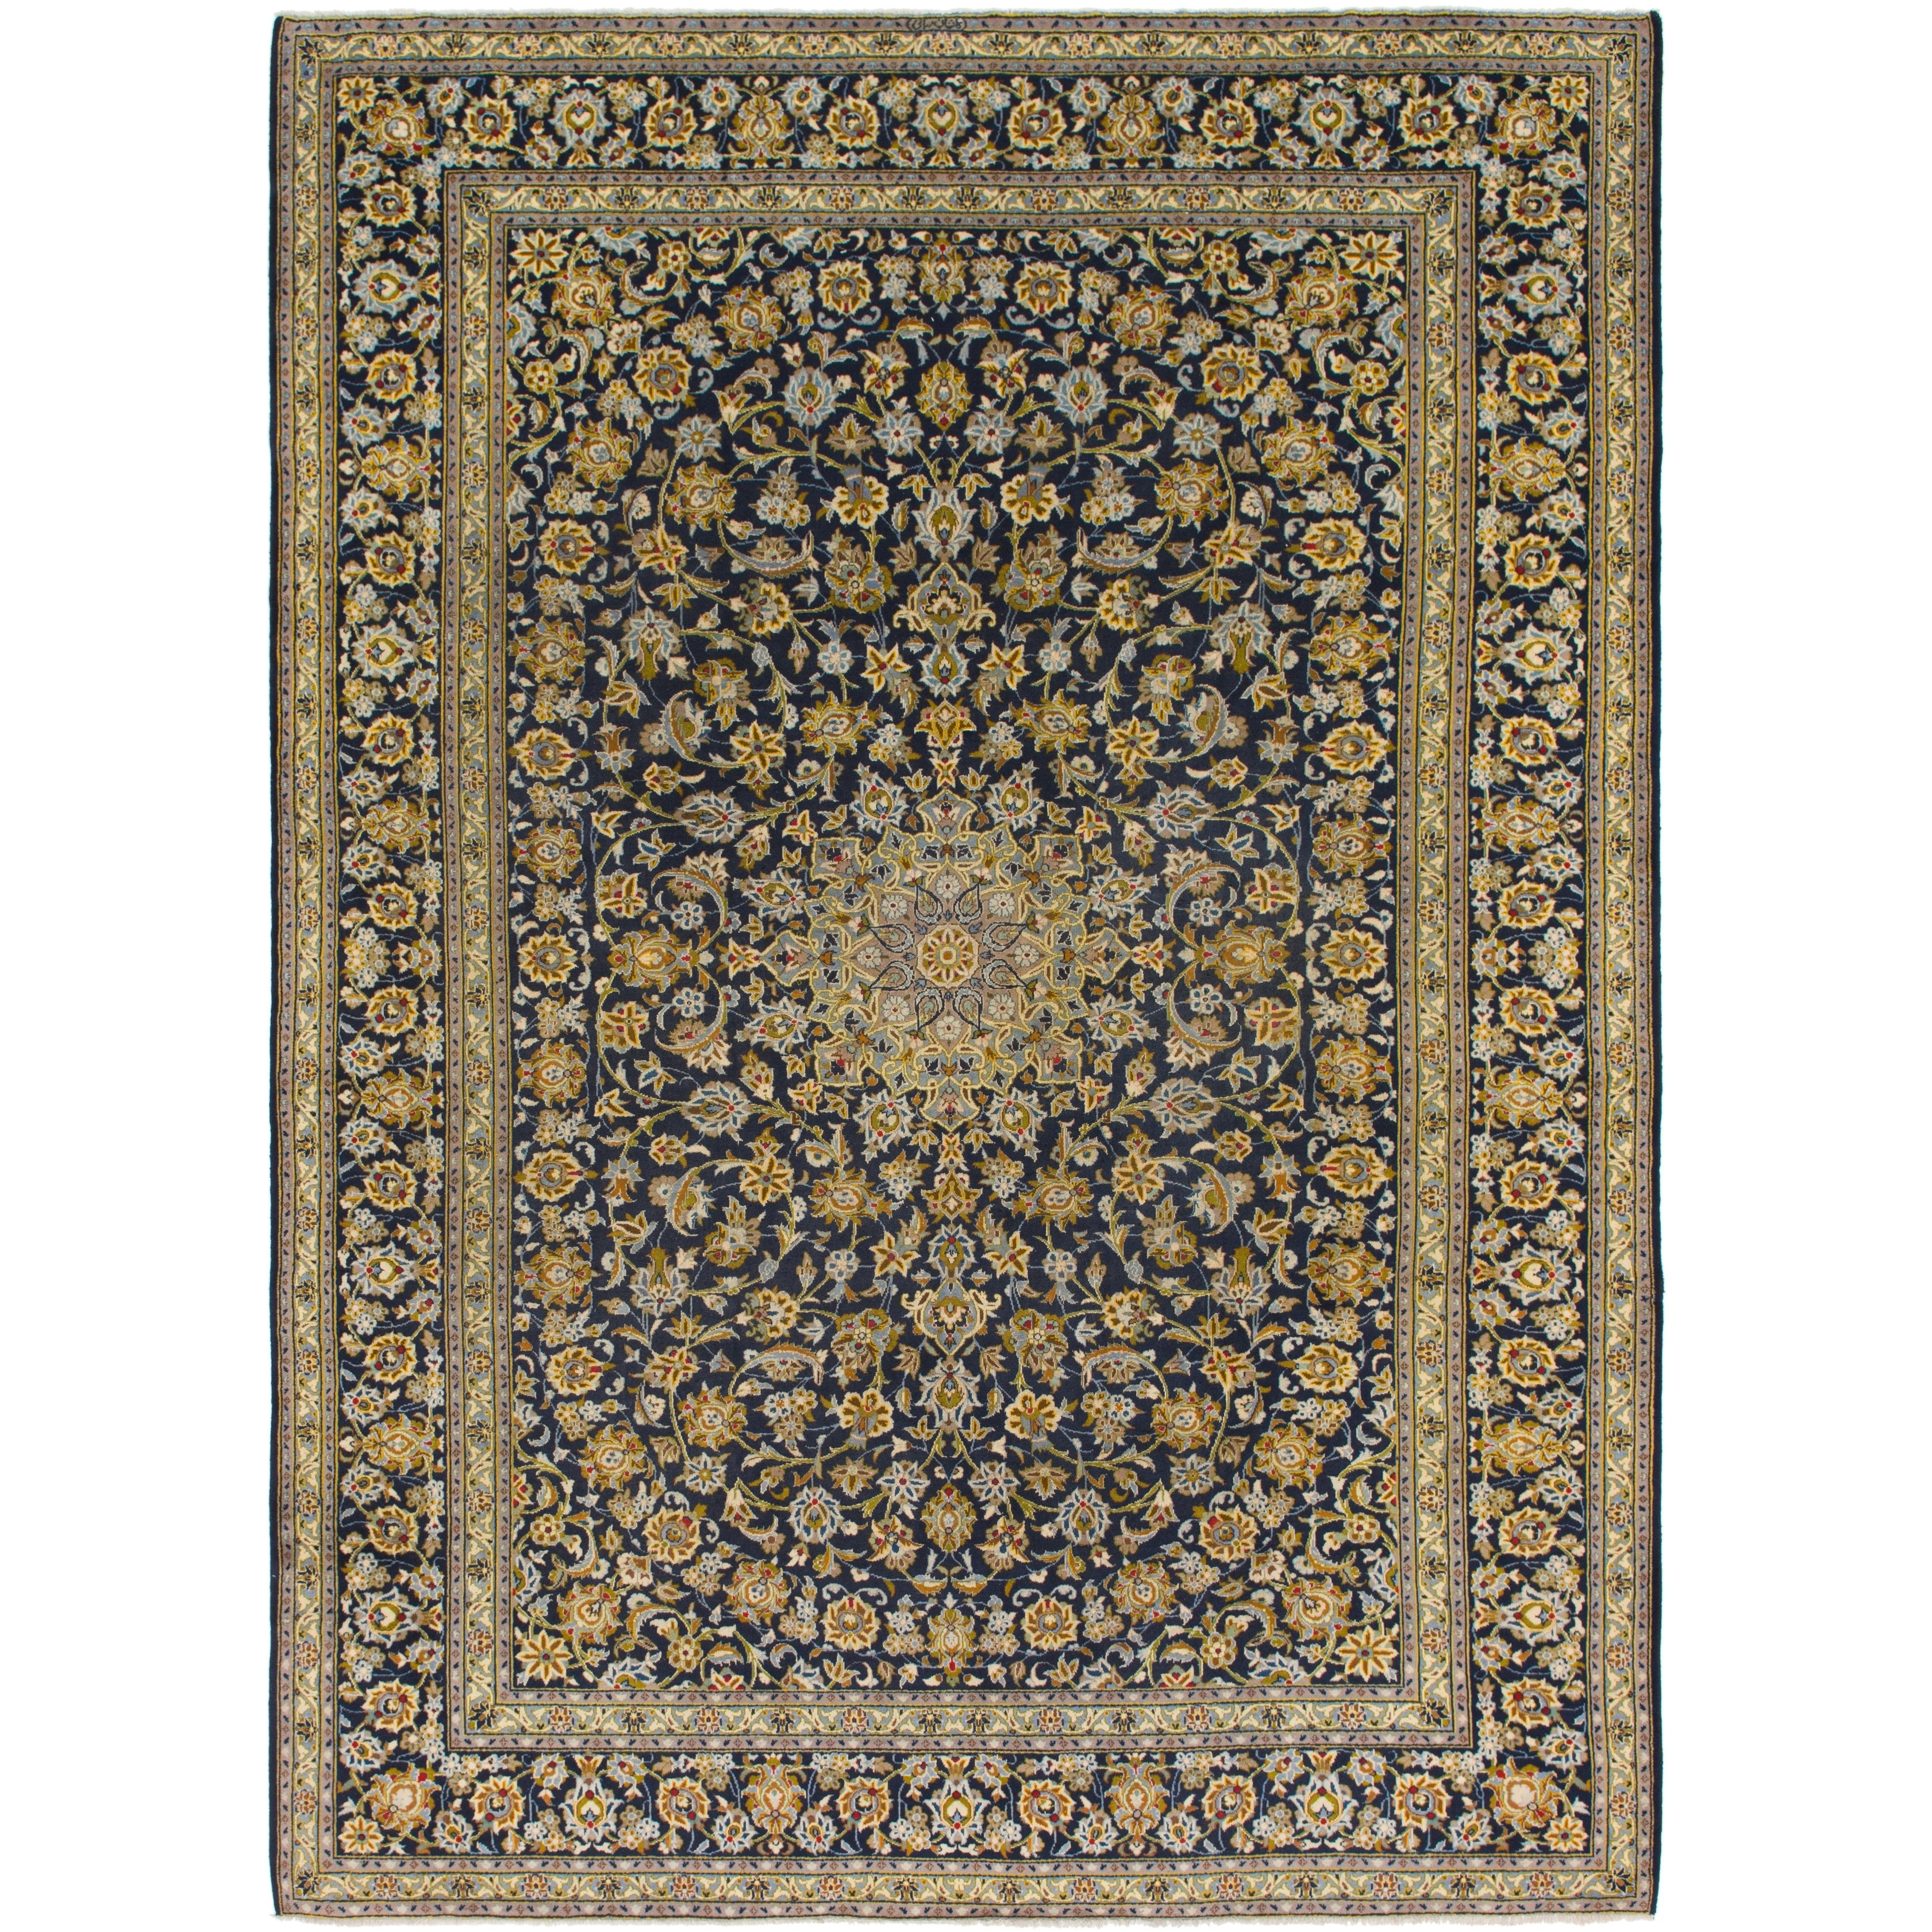 Hand Knotted Kashan Semi Antique Wool Area Rug - 9 9 x 13 7 (Navy blue - 9 9 x 13 7)